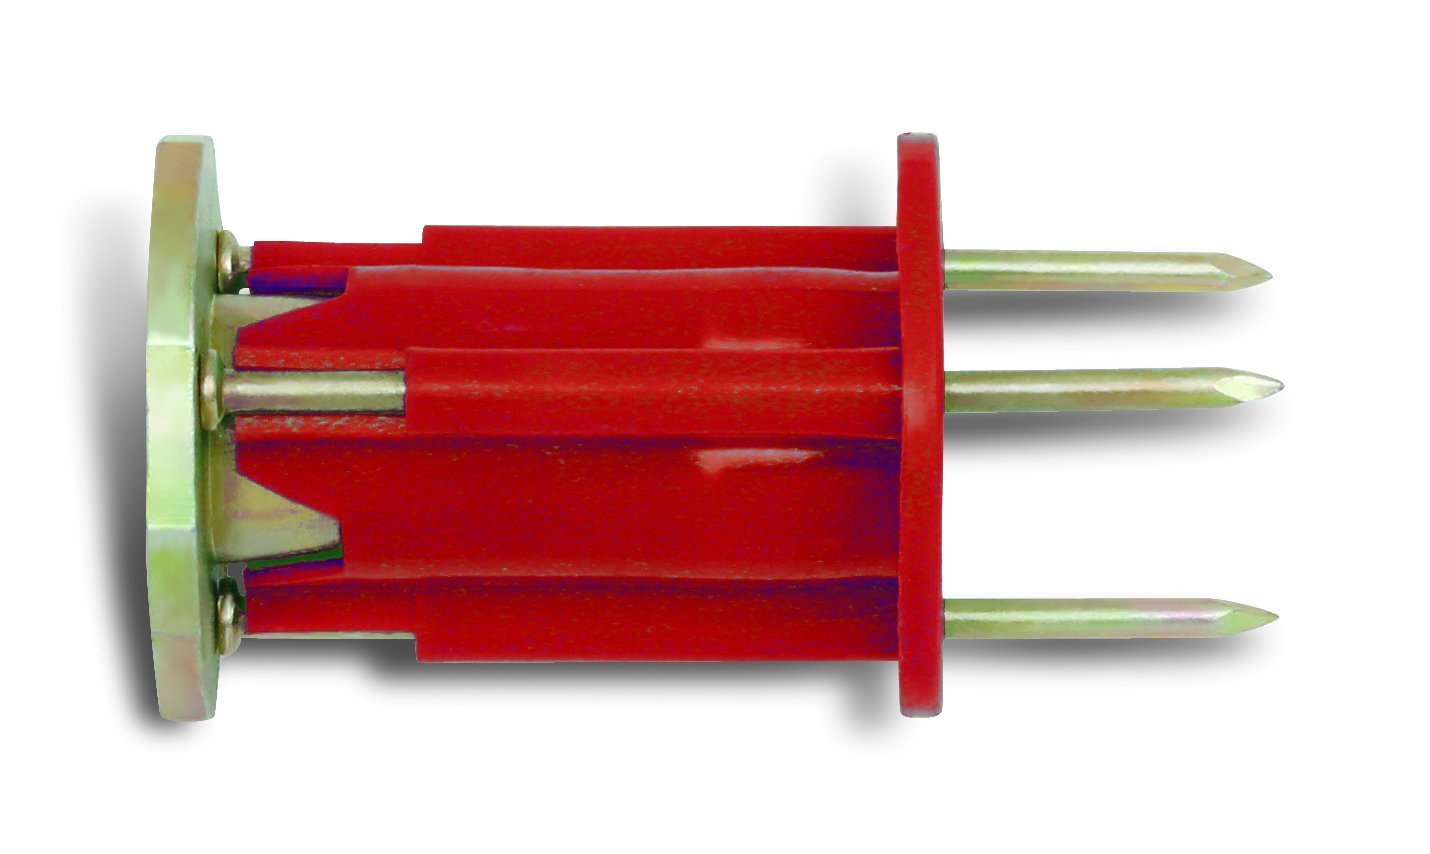 500 Per Box 1//4-Inch by 4-1//2-Inch Concrete Roofing Anchor Powers Fastening Innovations 03735 Perma-Seal Spike